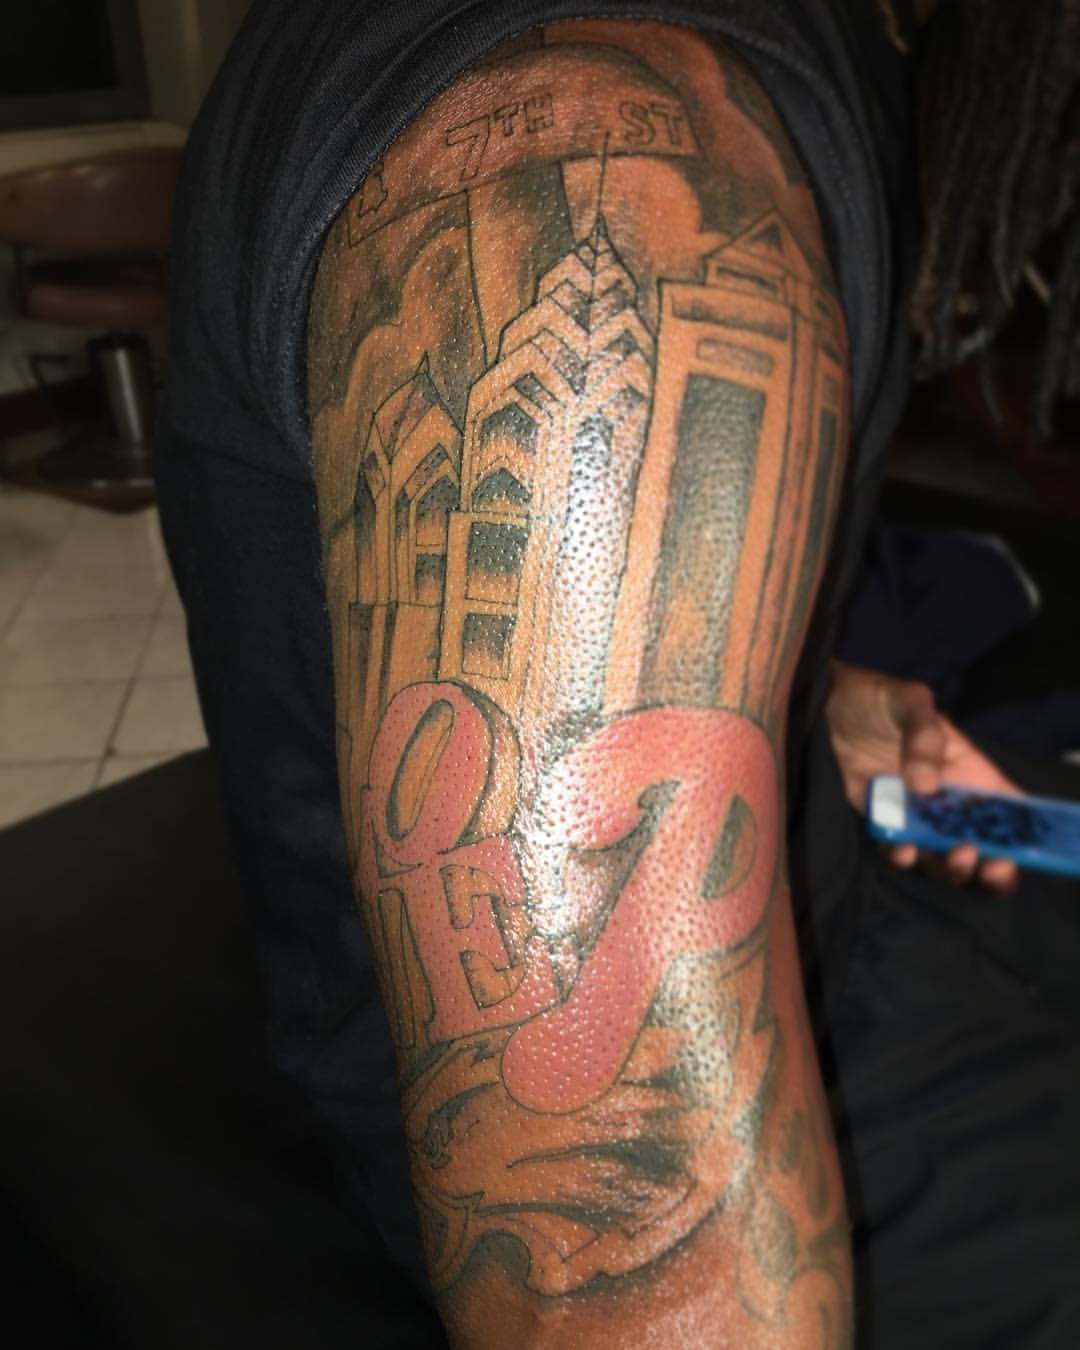 Sleeve Tattoo Artist: Philly Theme Half Sleeve Tattoo I Did Yesterday ! It's A